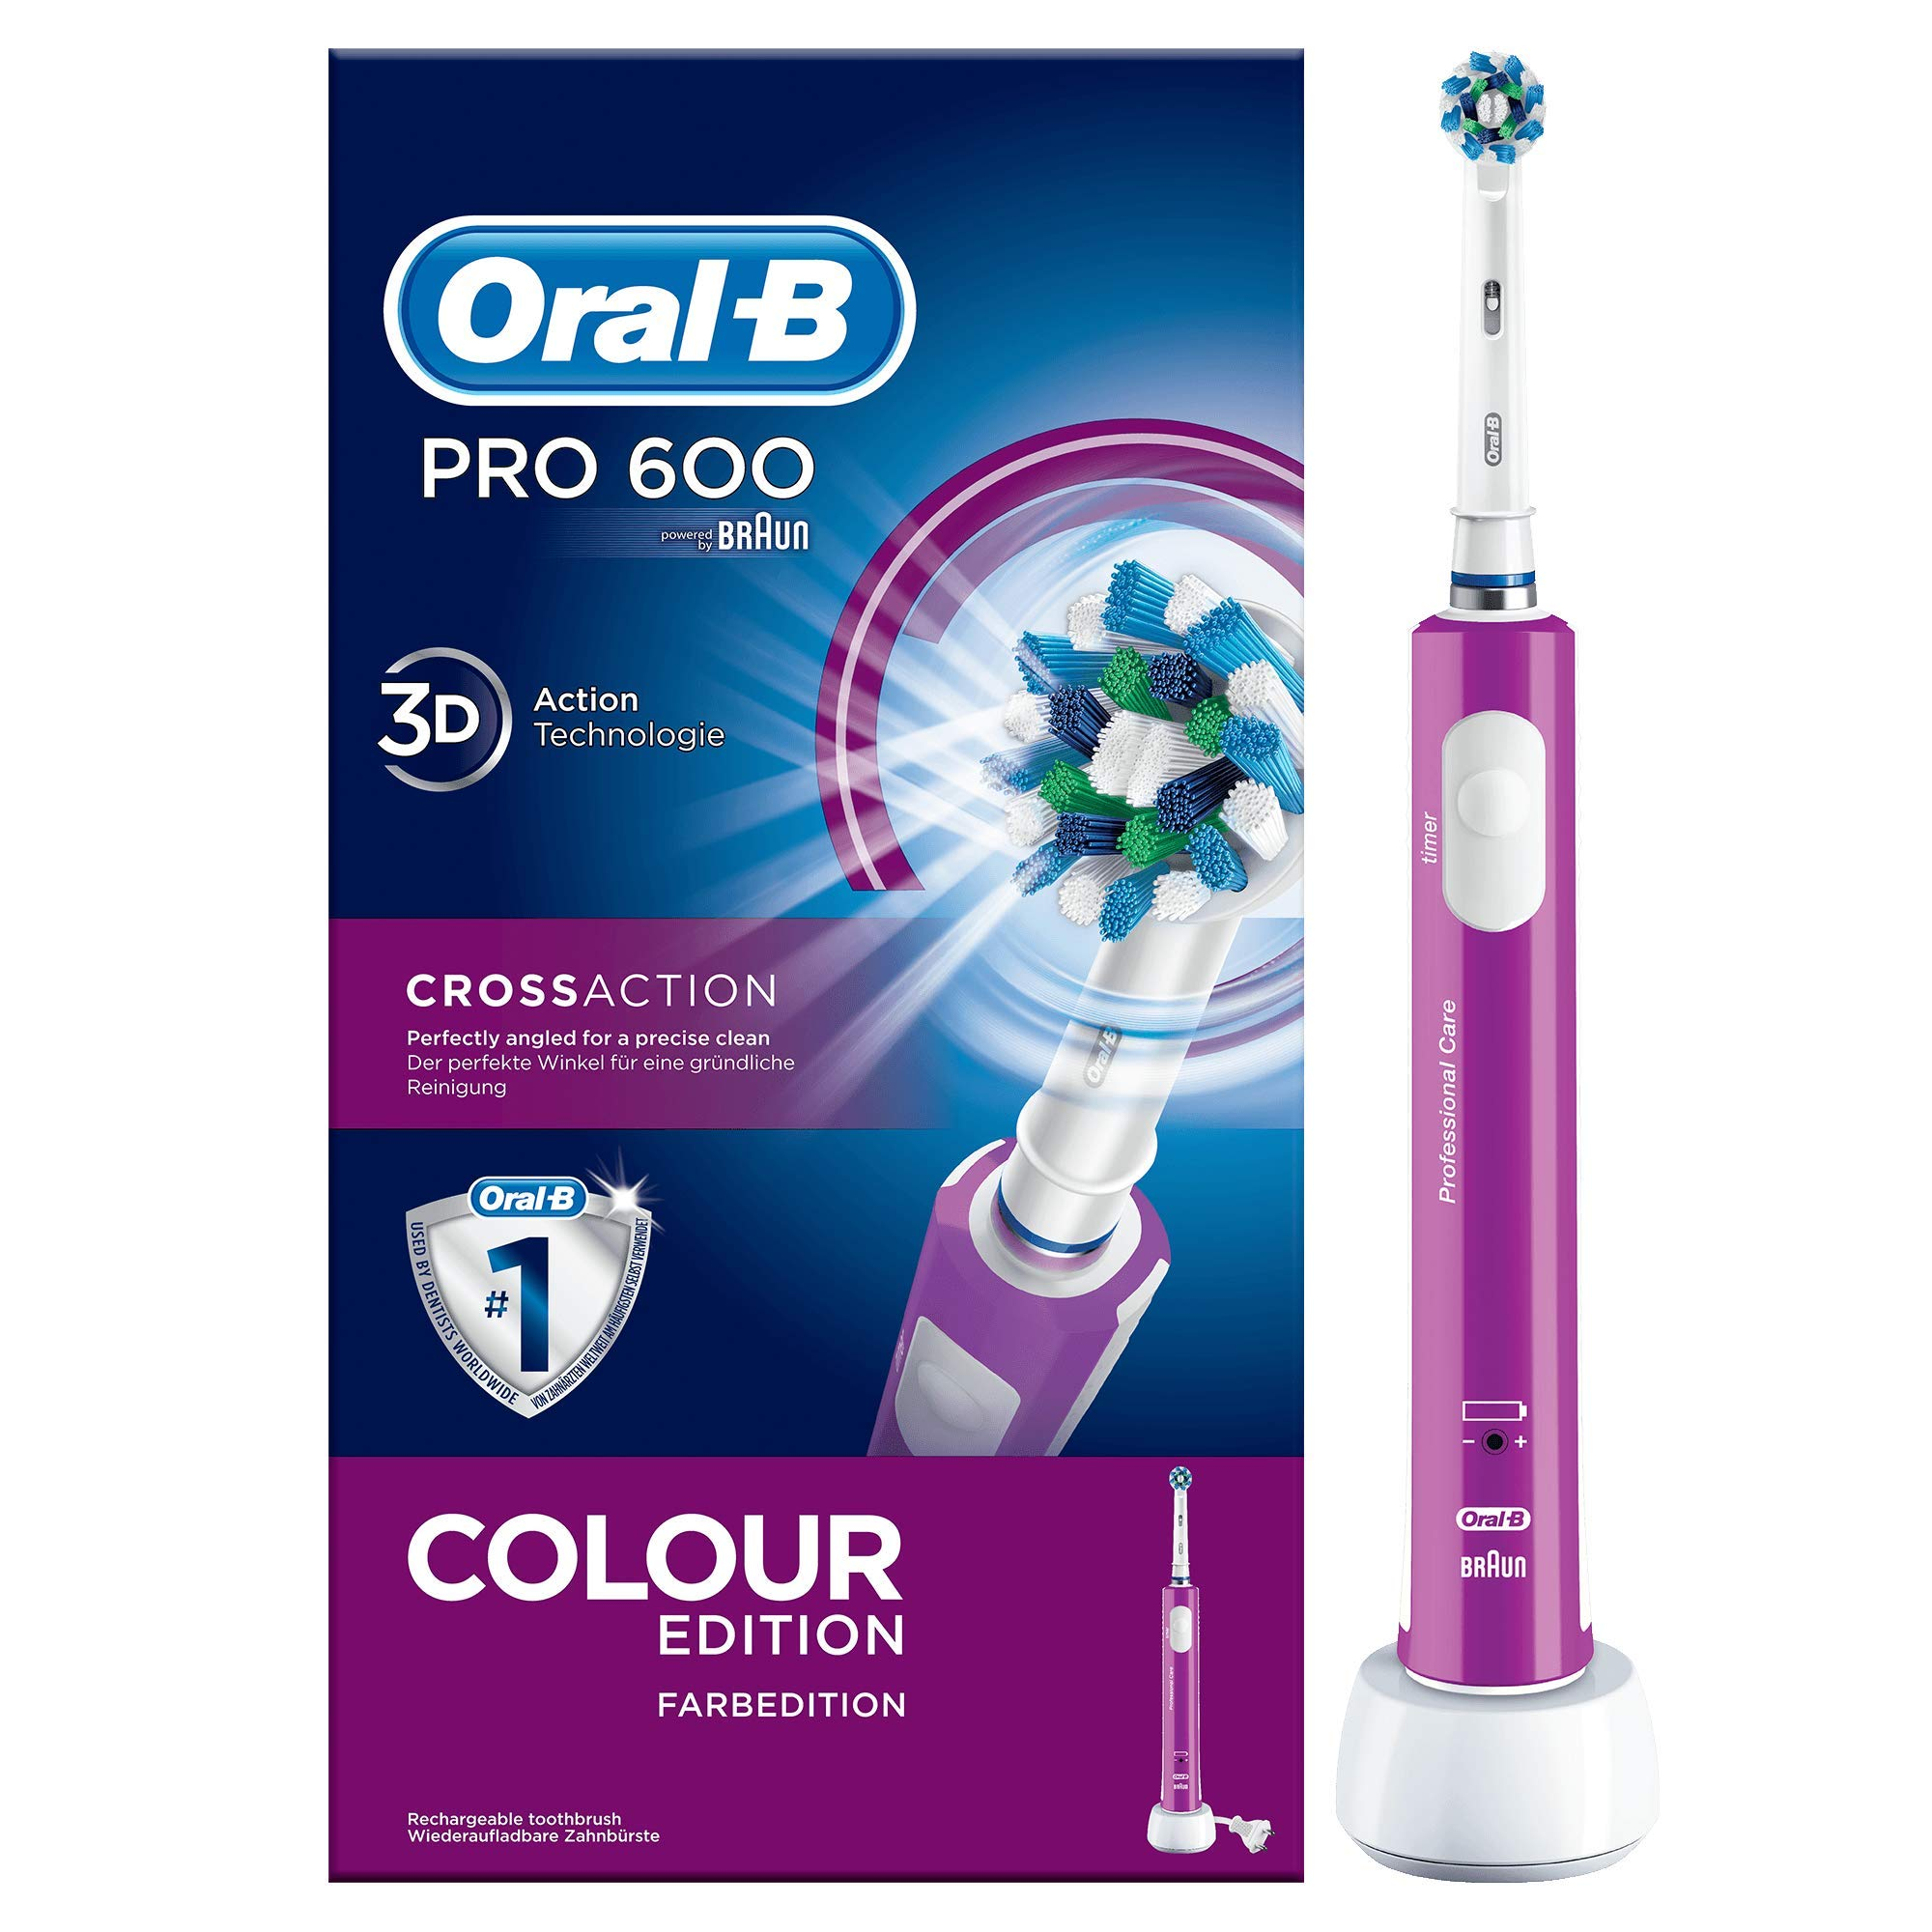 Oral-B PRO 600 CrossAction - Cepillo eléctrico recargable, color morado, batería, 3d tecnología product image